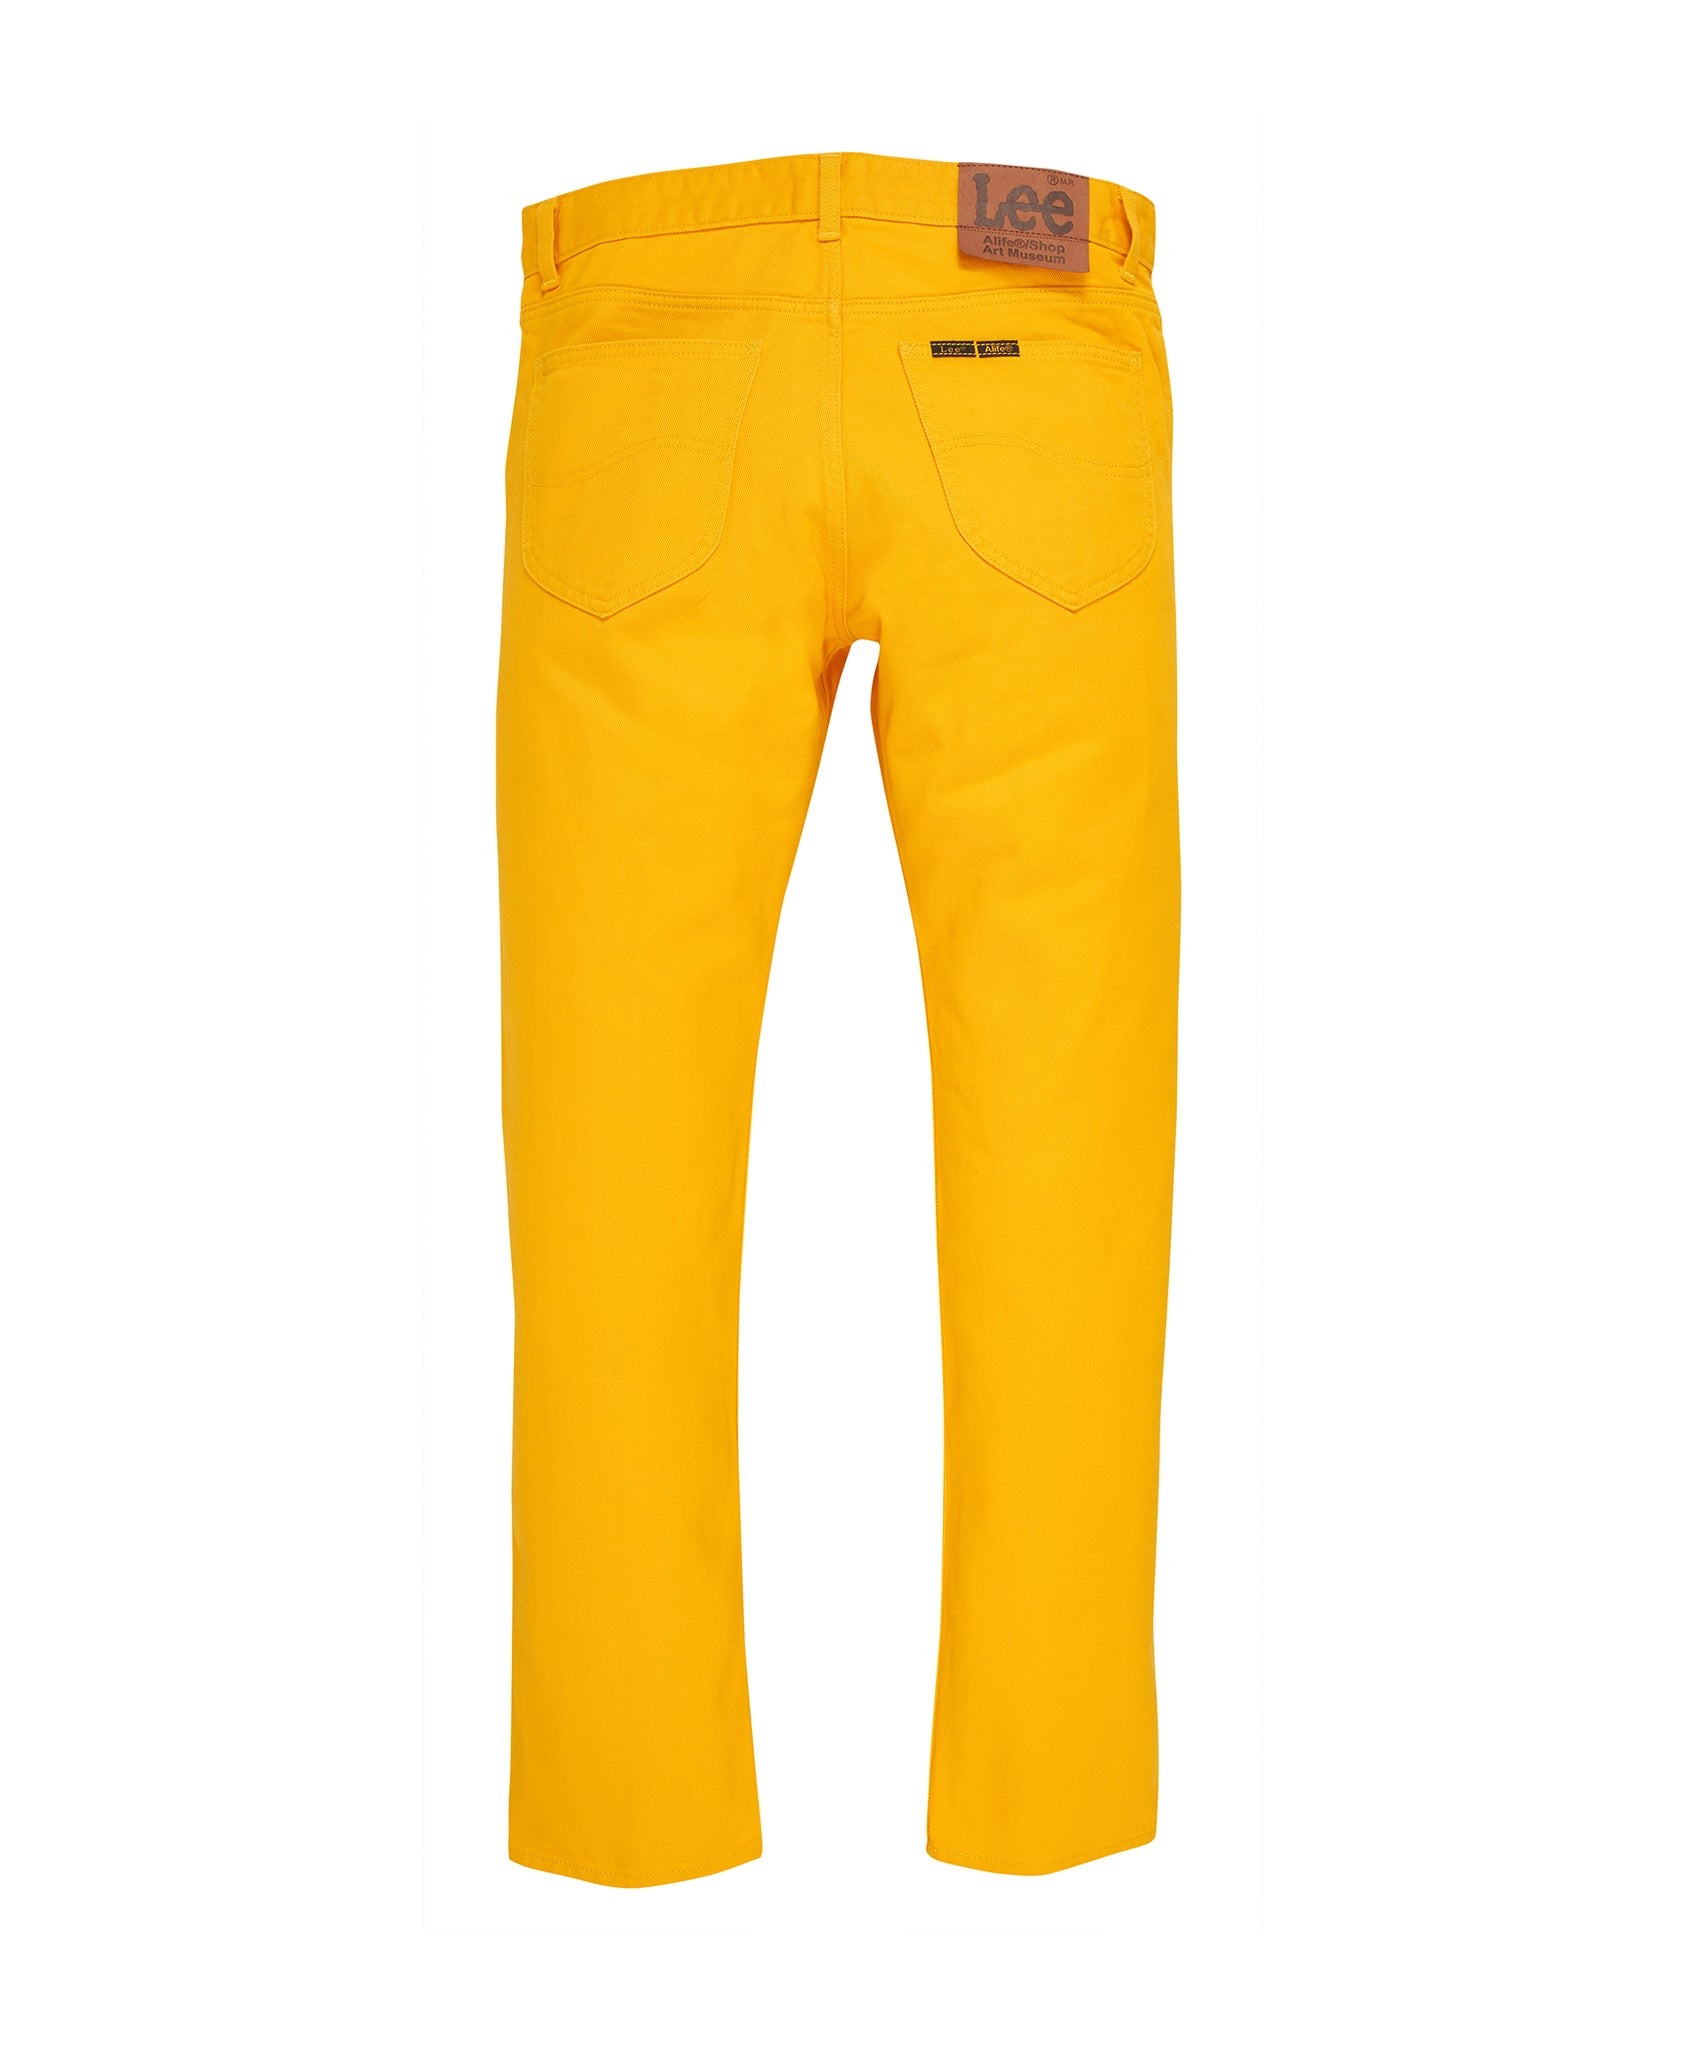 Alife/Lee Colored Cotton Twill Pant in Yellow rear view